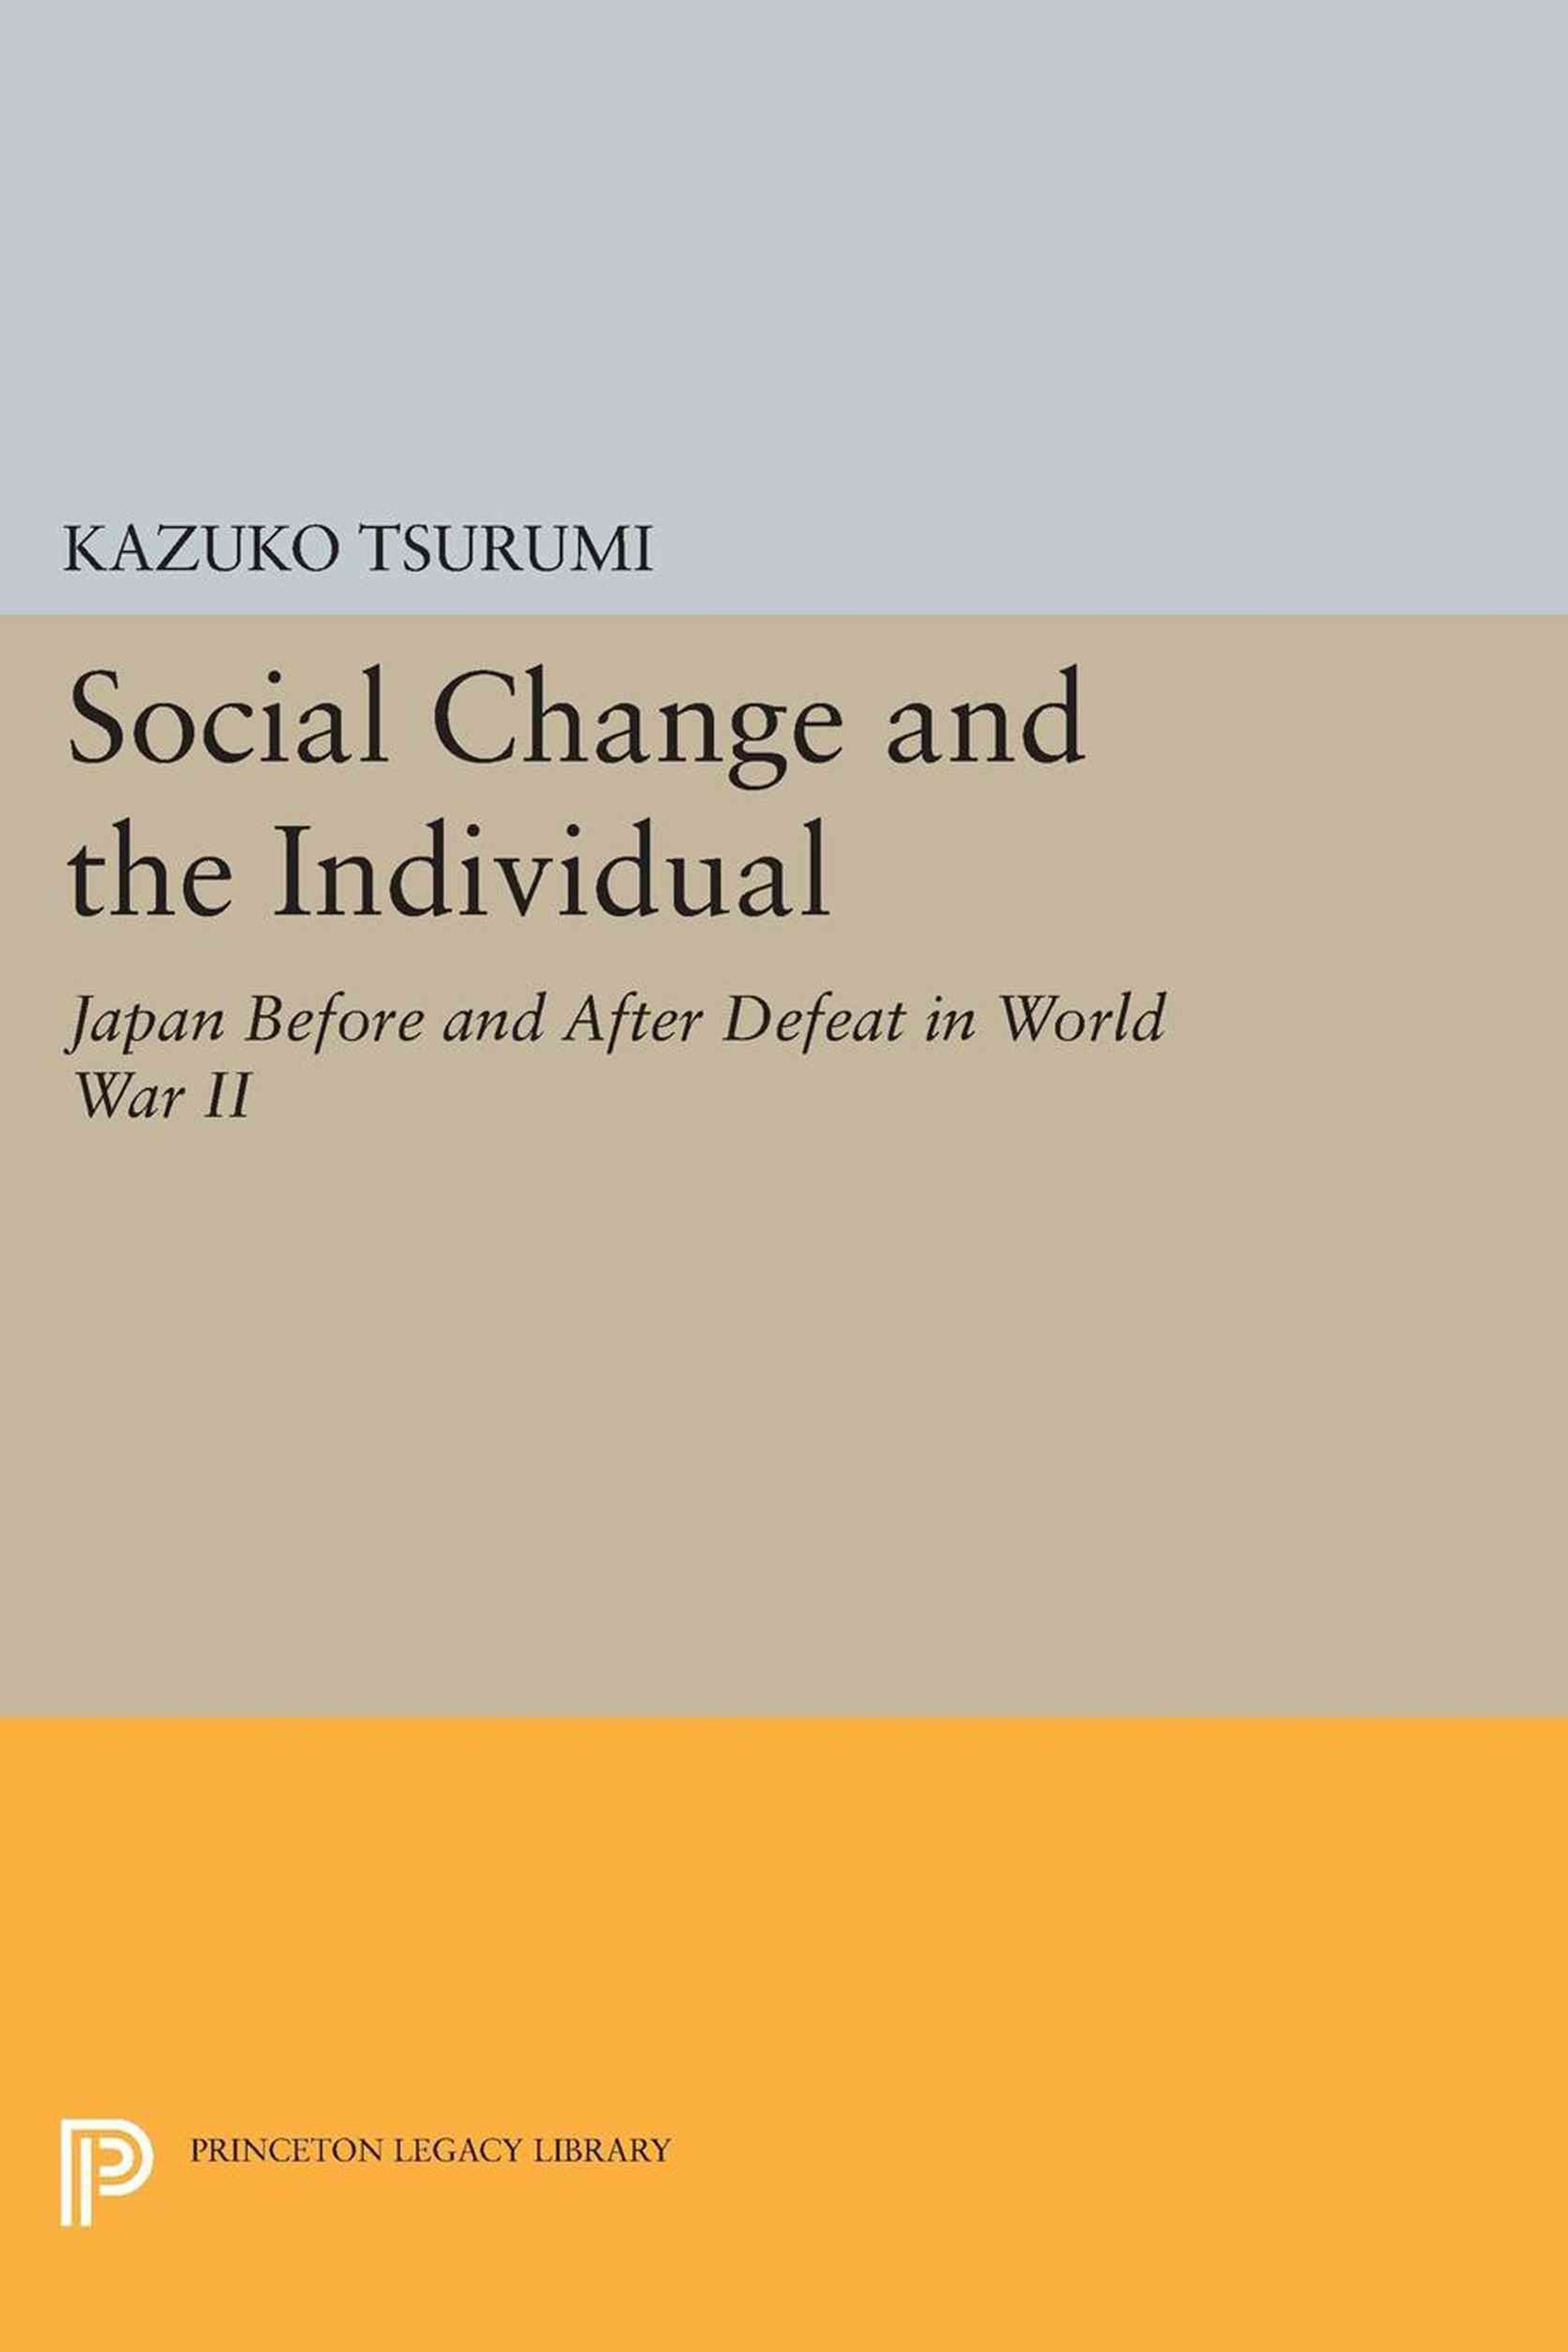 Social Change and the Individual